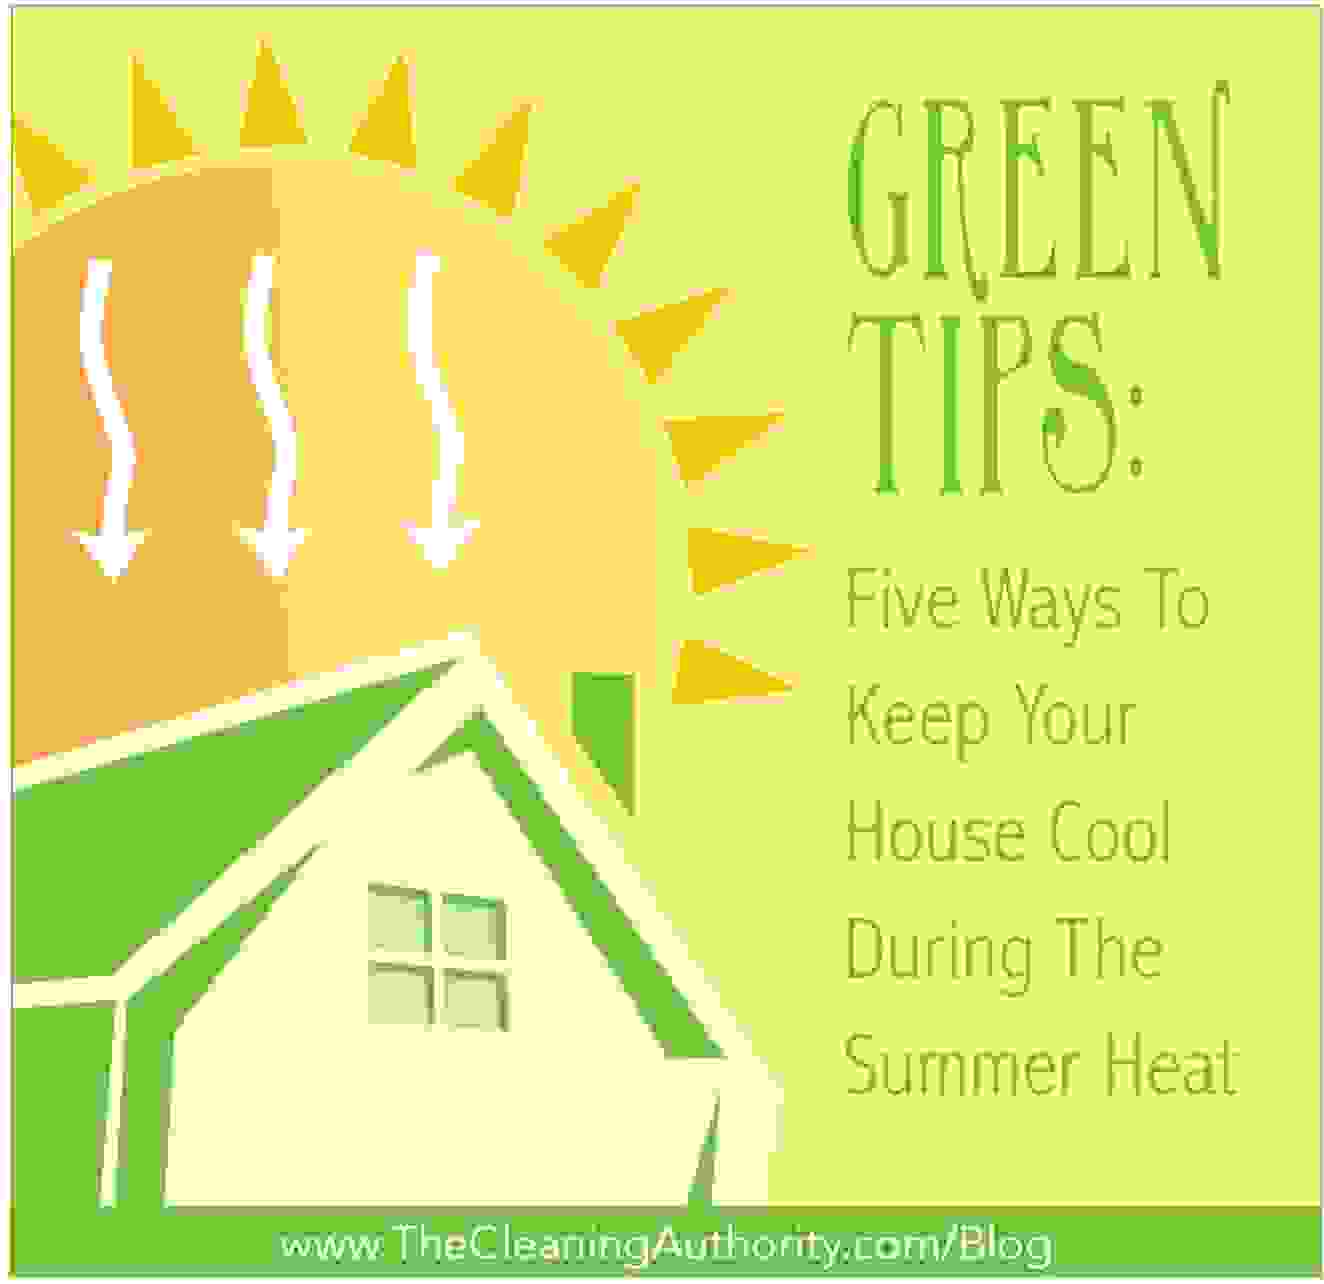 Five Ways To Keep Your House Cool During The Summer